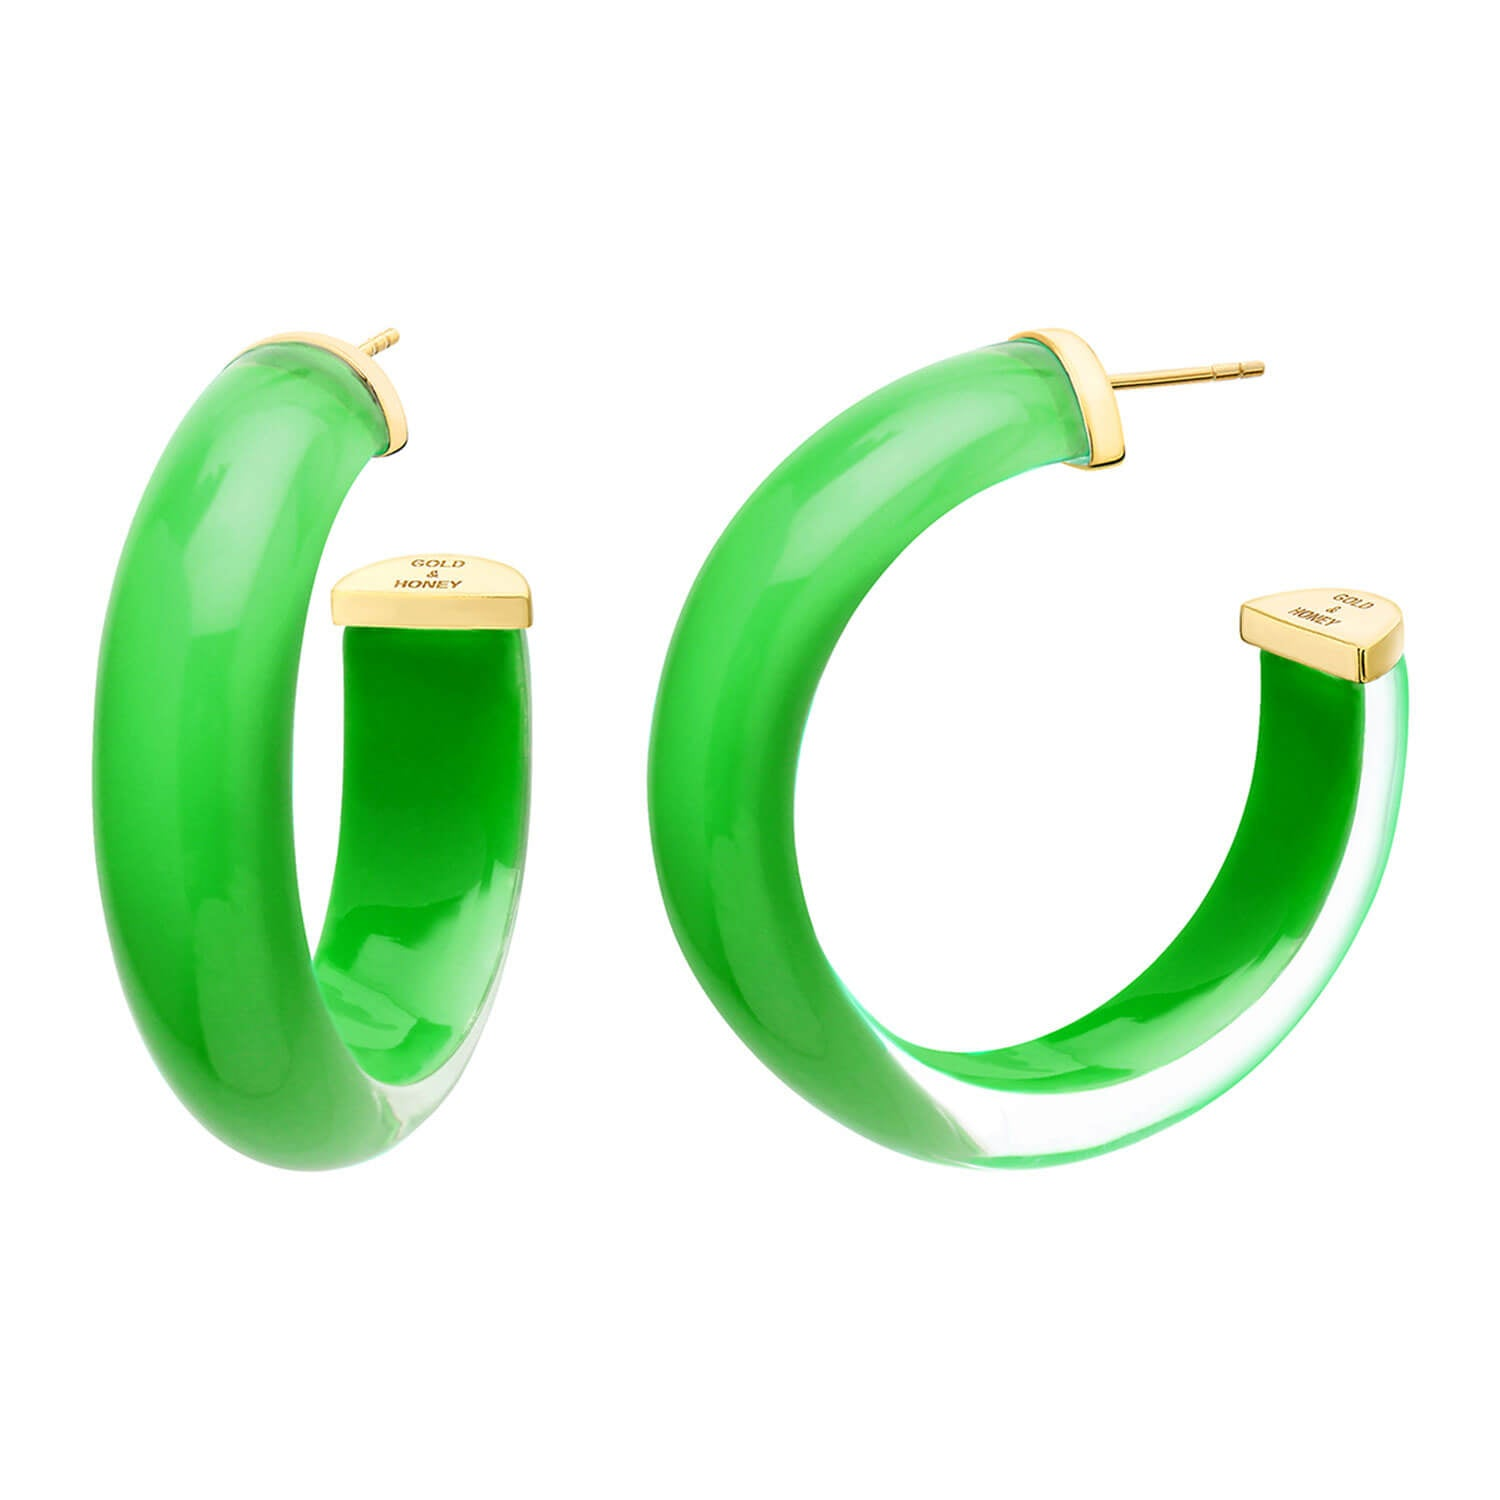 Medium Illusion Lucite Hoops in Green